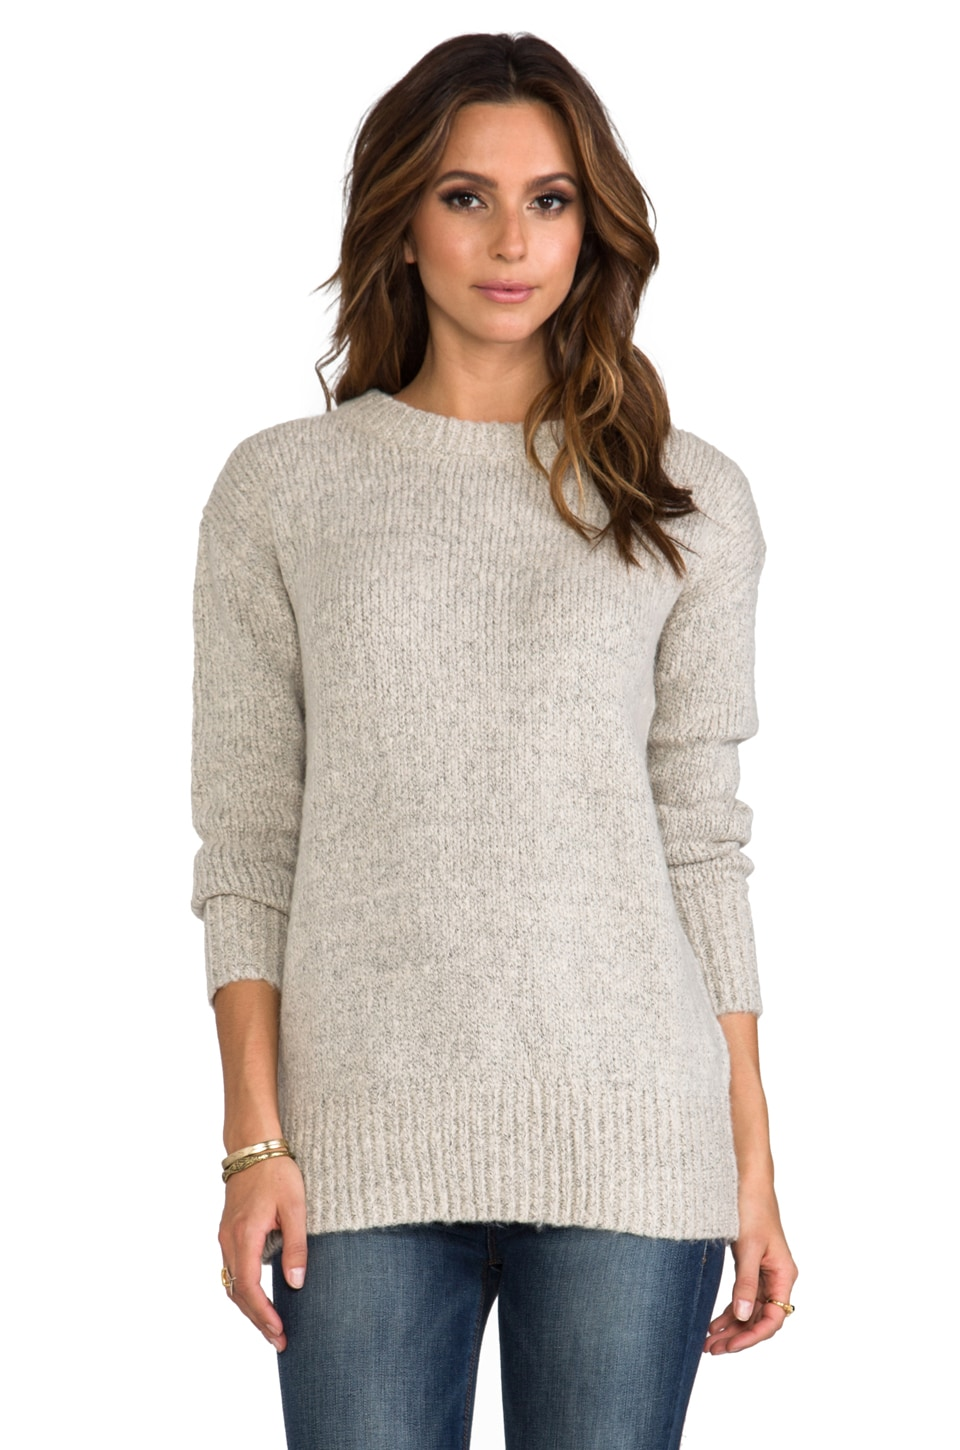 BB Dakota August Over Sized Sweater in Grey